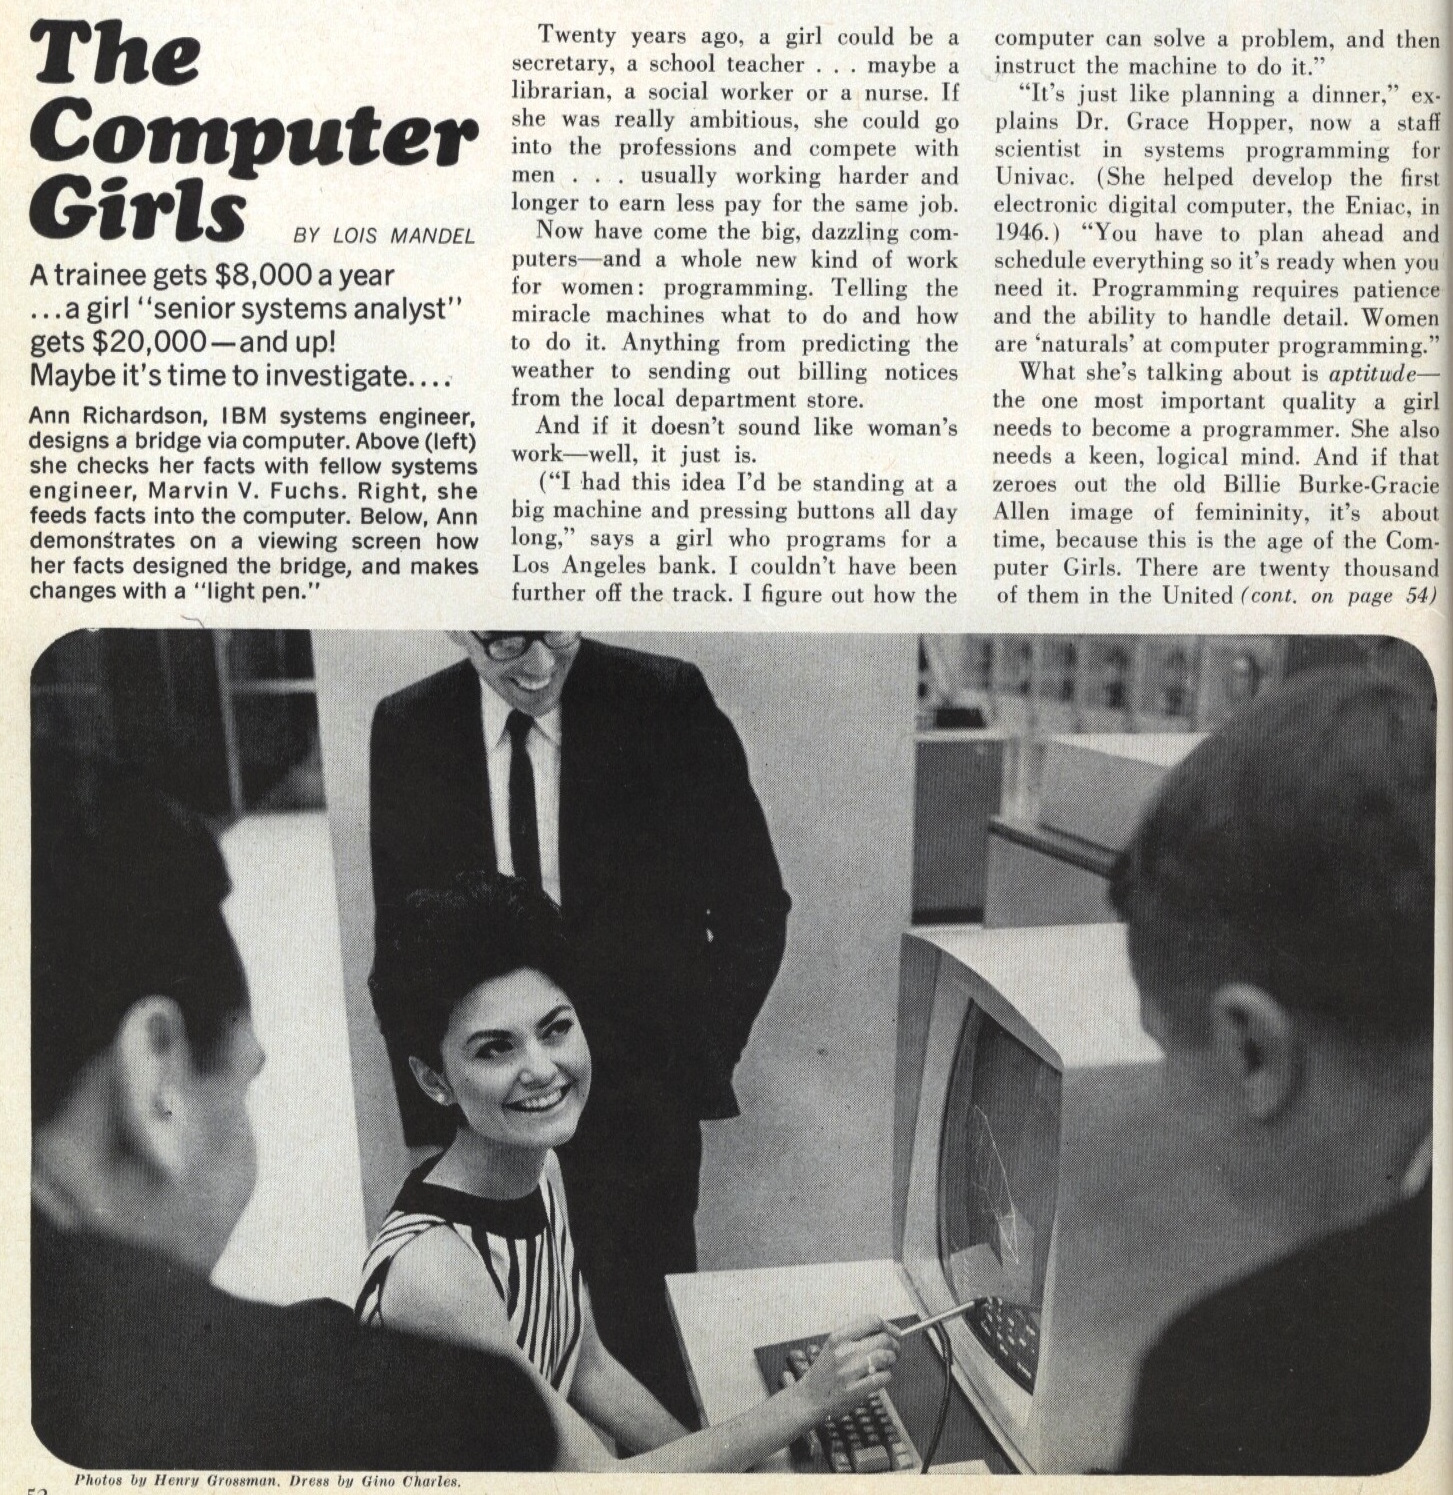 """""""You get terribly well paid because there are so few people doing it.""""   US Cosmo ran an article 'The Computer Girls'. in 1967, when 11% of computer science graduates were women. The proportion peaked at 37% in 1984."""